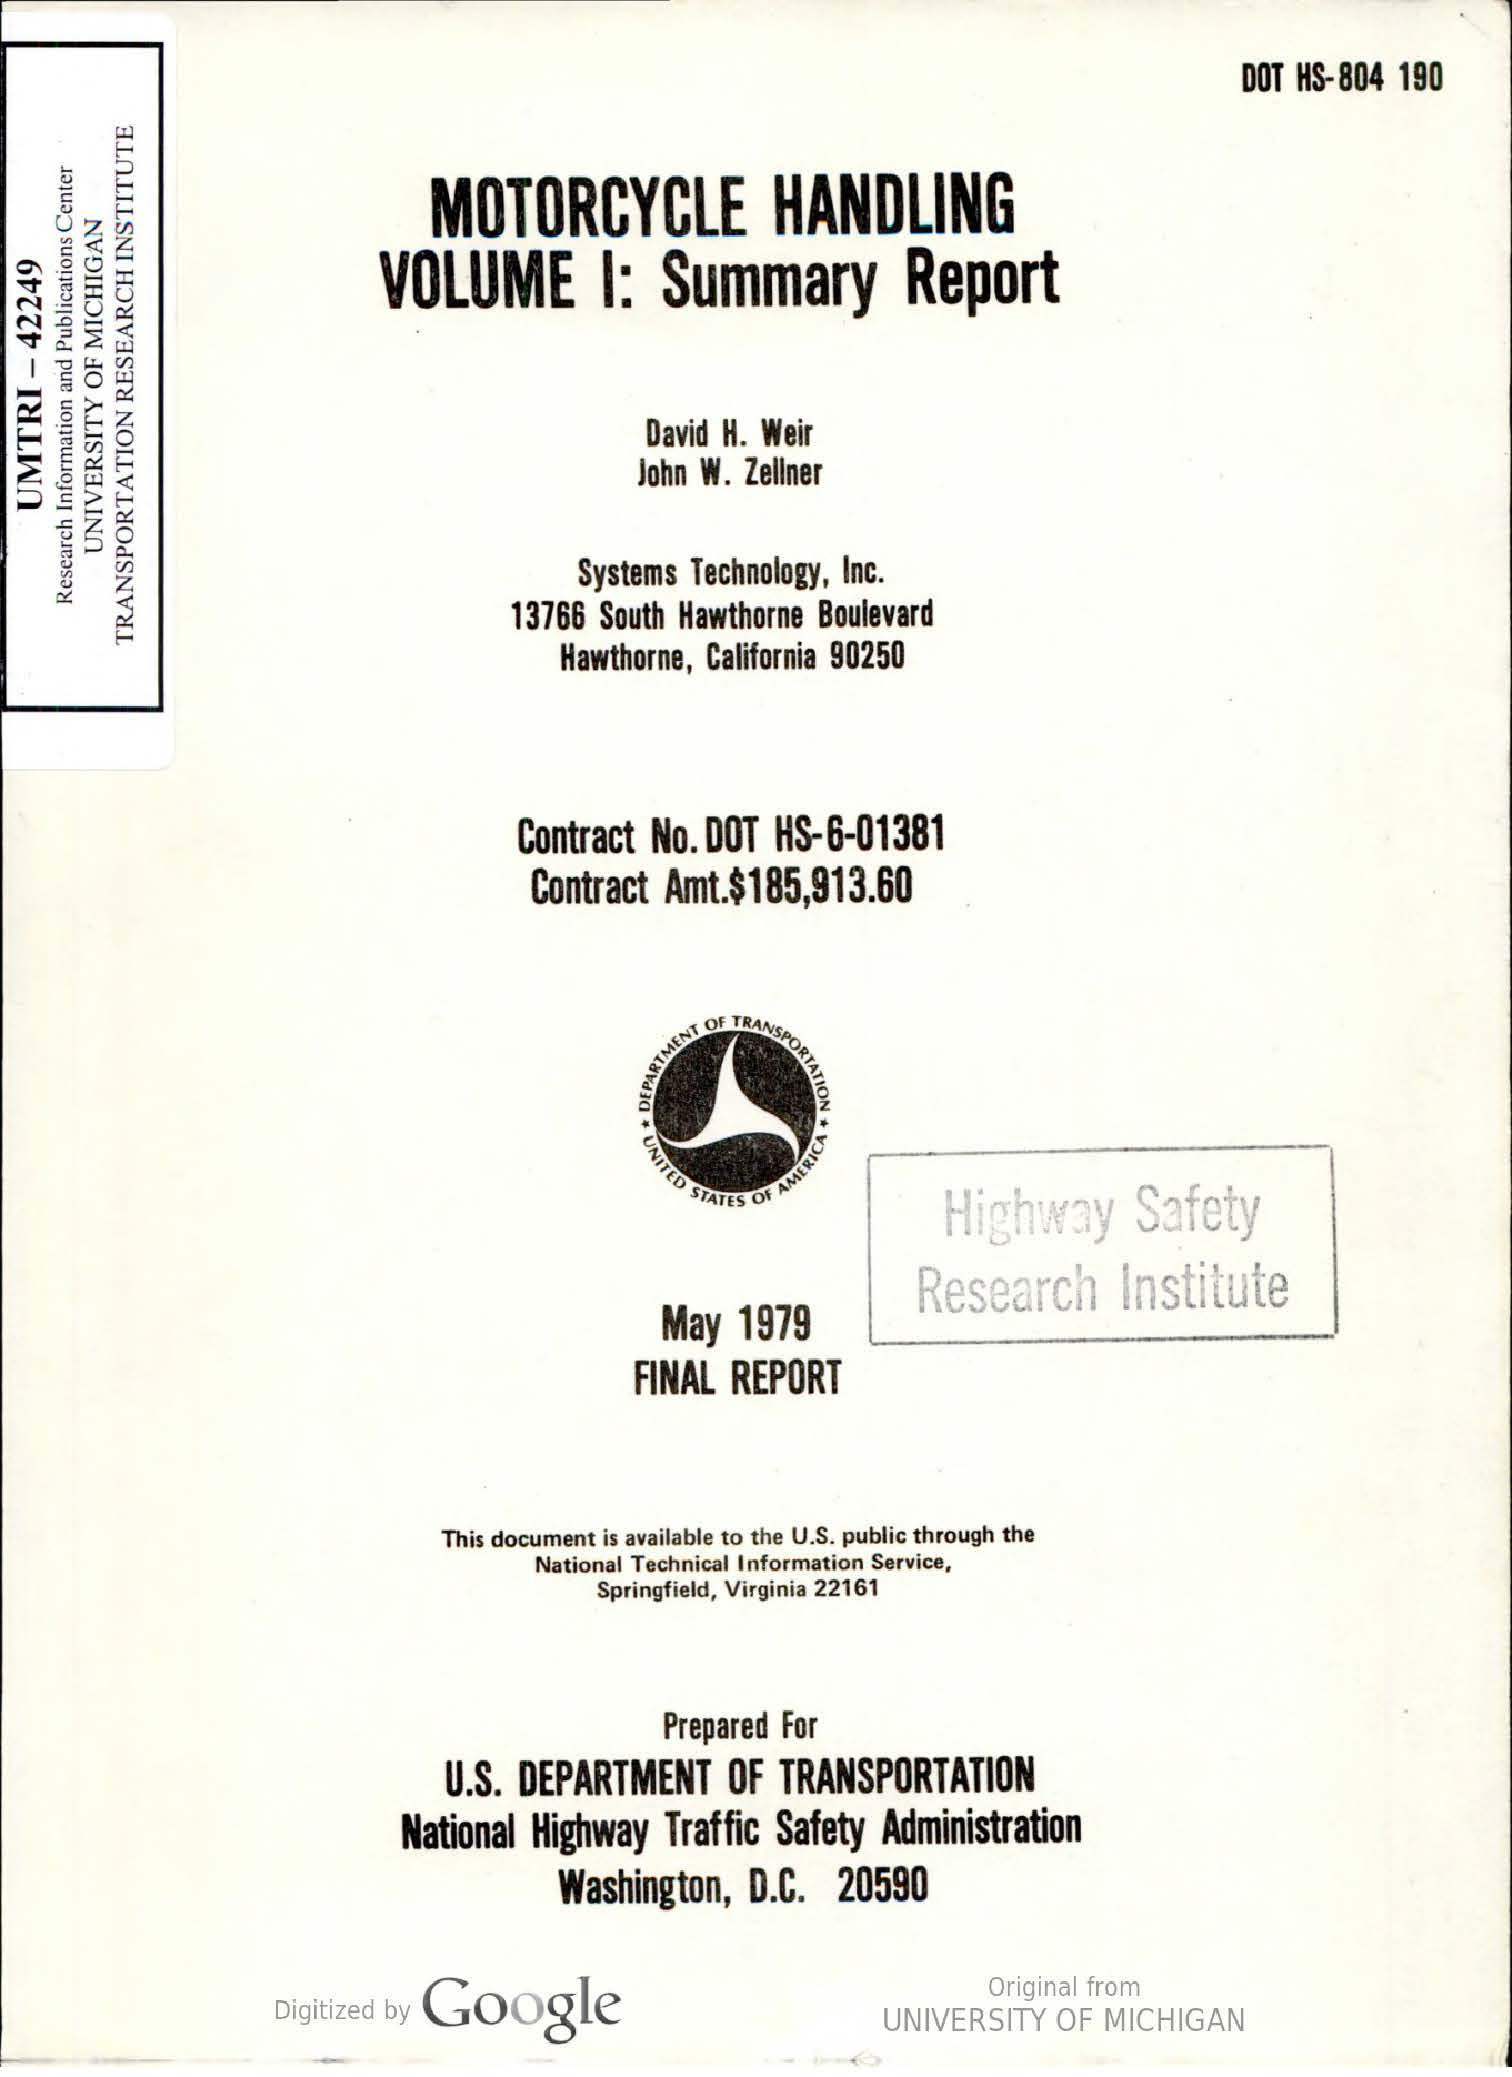 Motorcycle handling - volume 1 (1979)